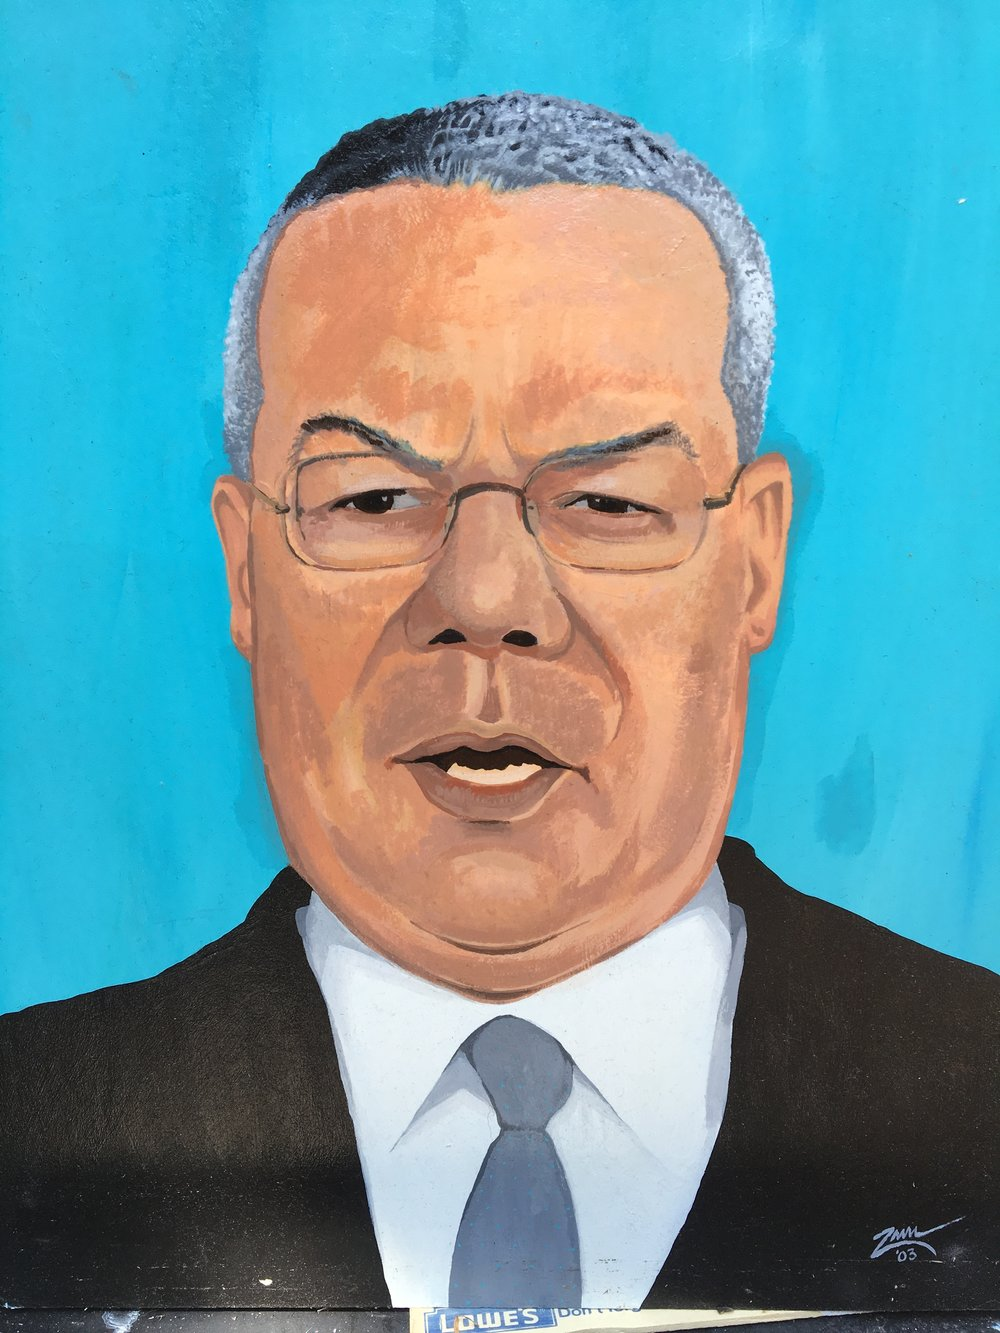 "Zamora, Gil. Secretary of State, Colin Powell. 2003. Acrylic on illustration board, 15"" x 20"". Private collection."